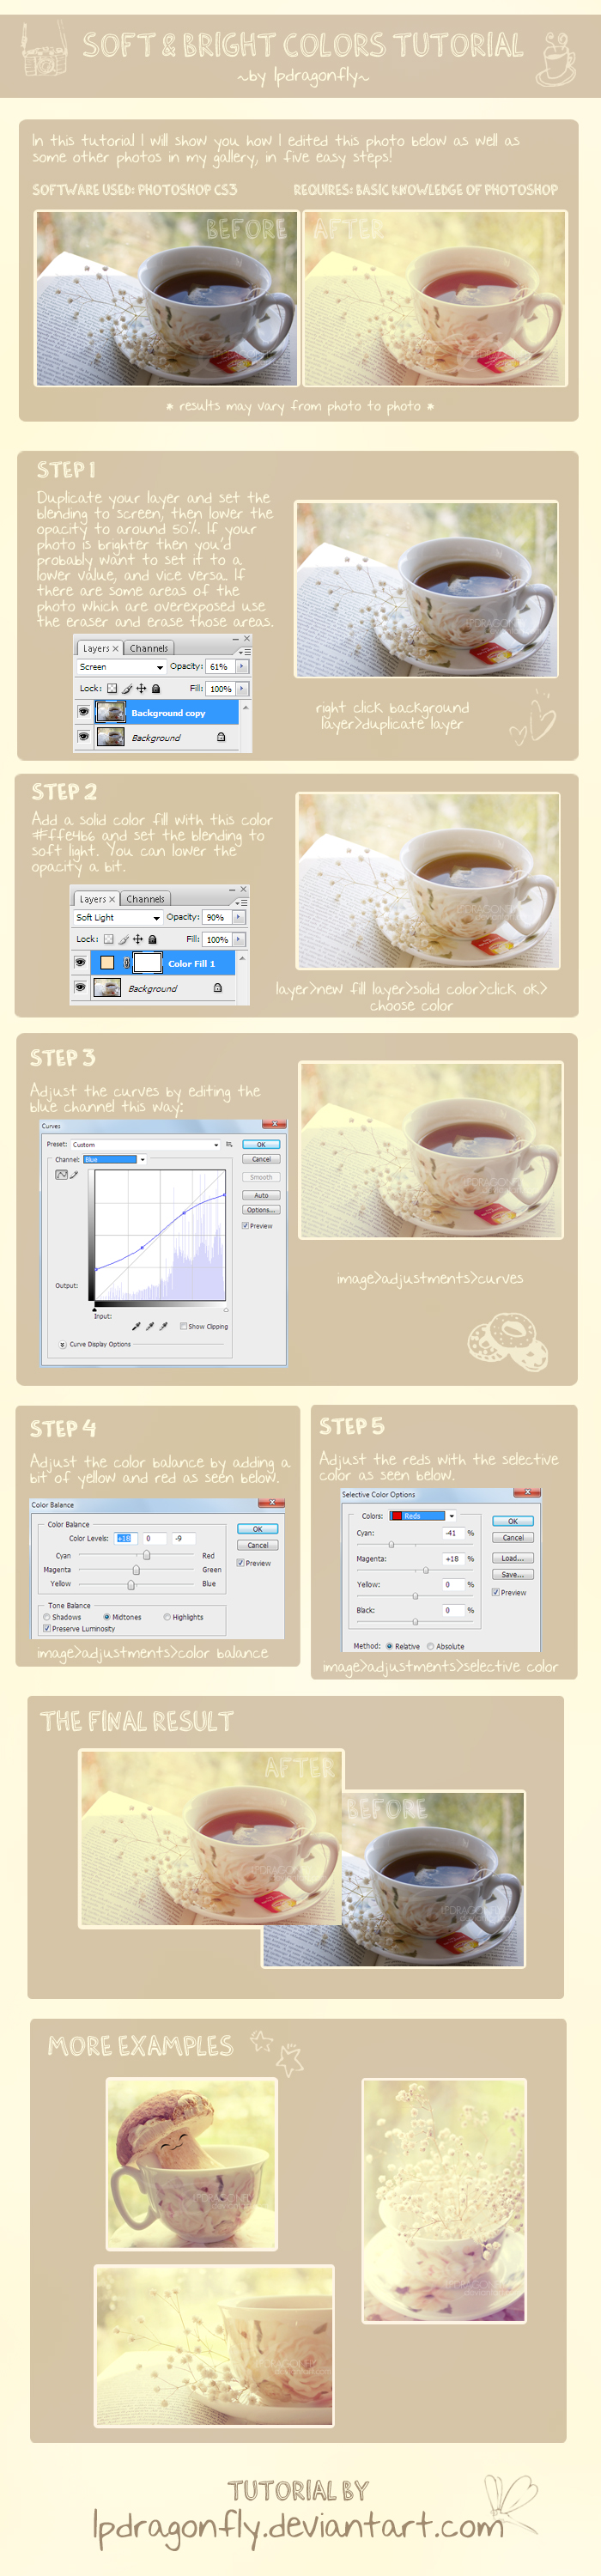 soft bright colors tutorial by ivadesign